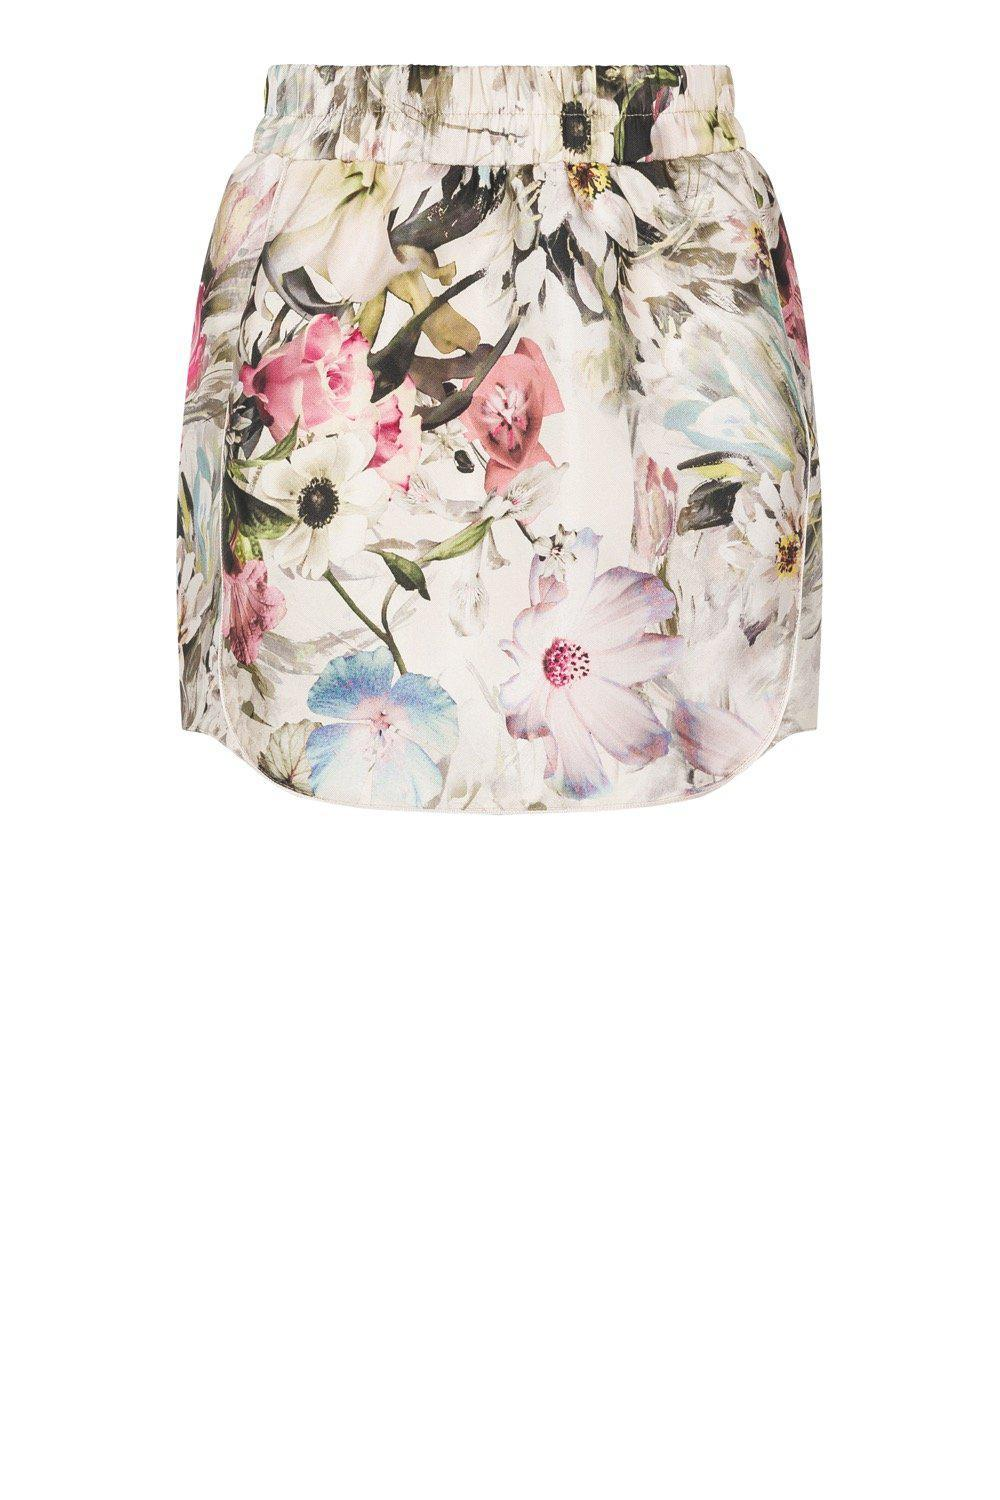 Nursery skirt in floral canvas